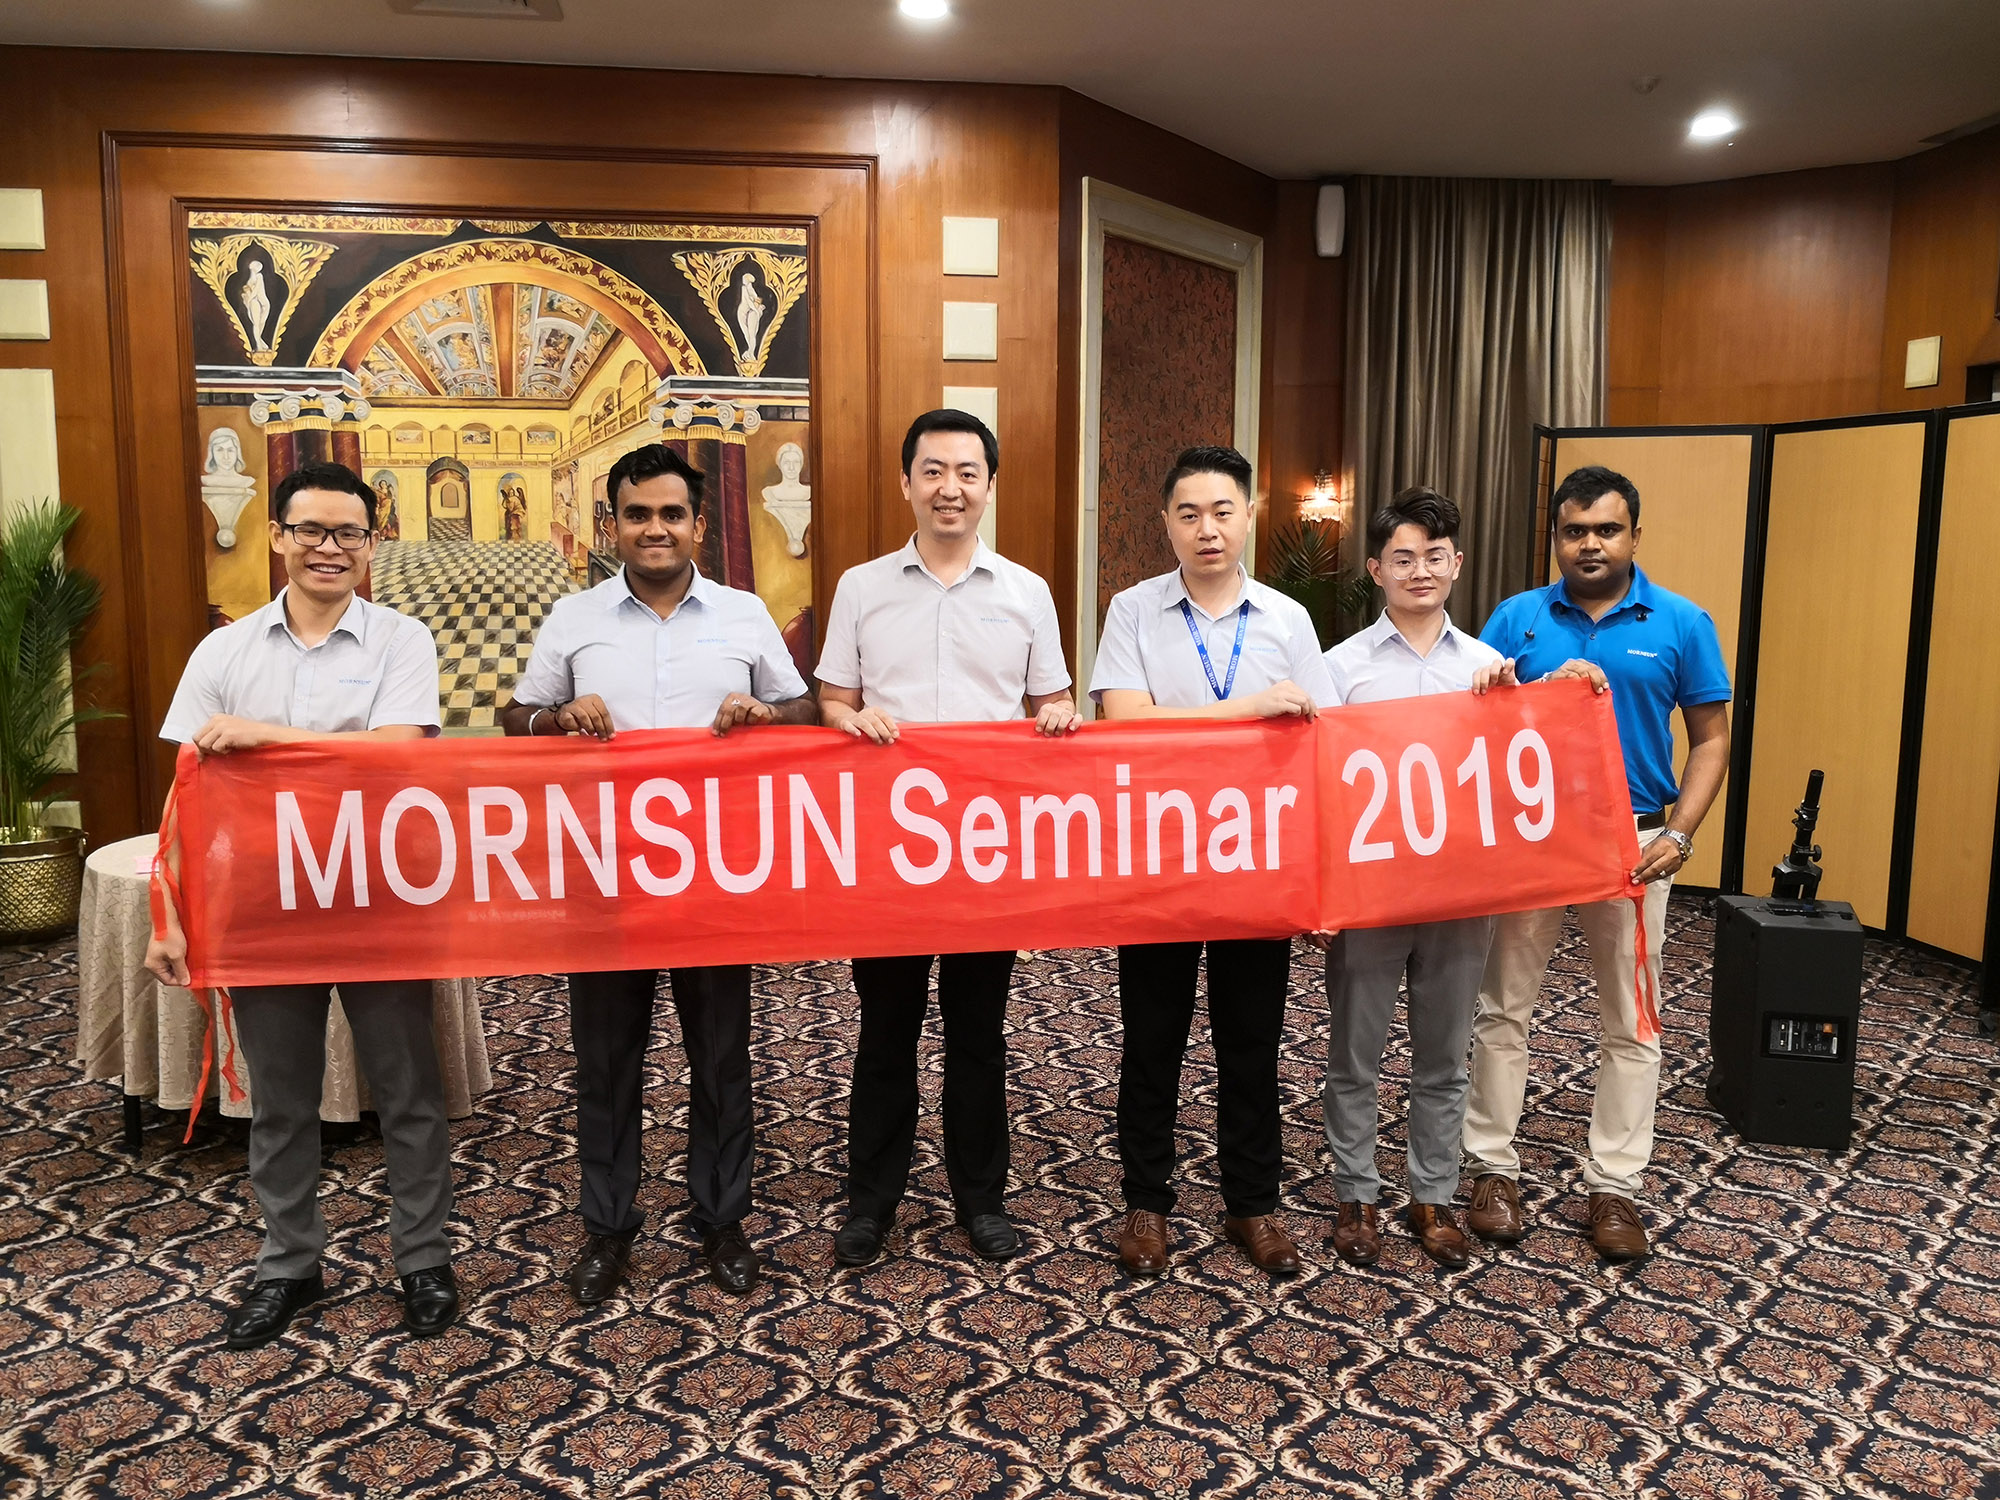 Mornsun Successfully Concludes 2019 India Seminars- focuses on high-efficiency power solutions